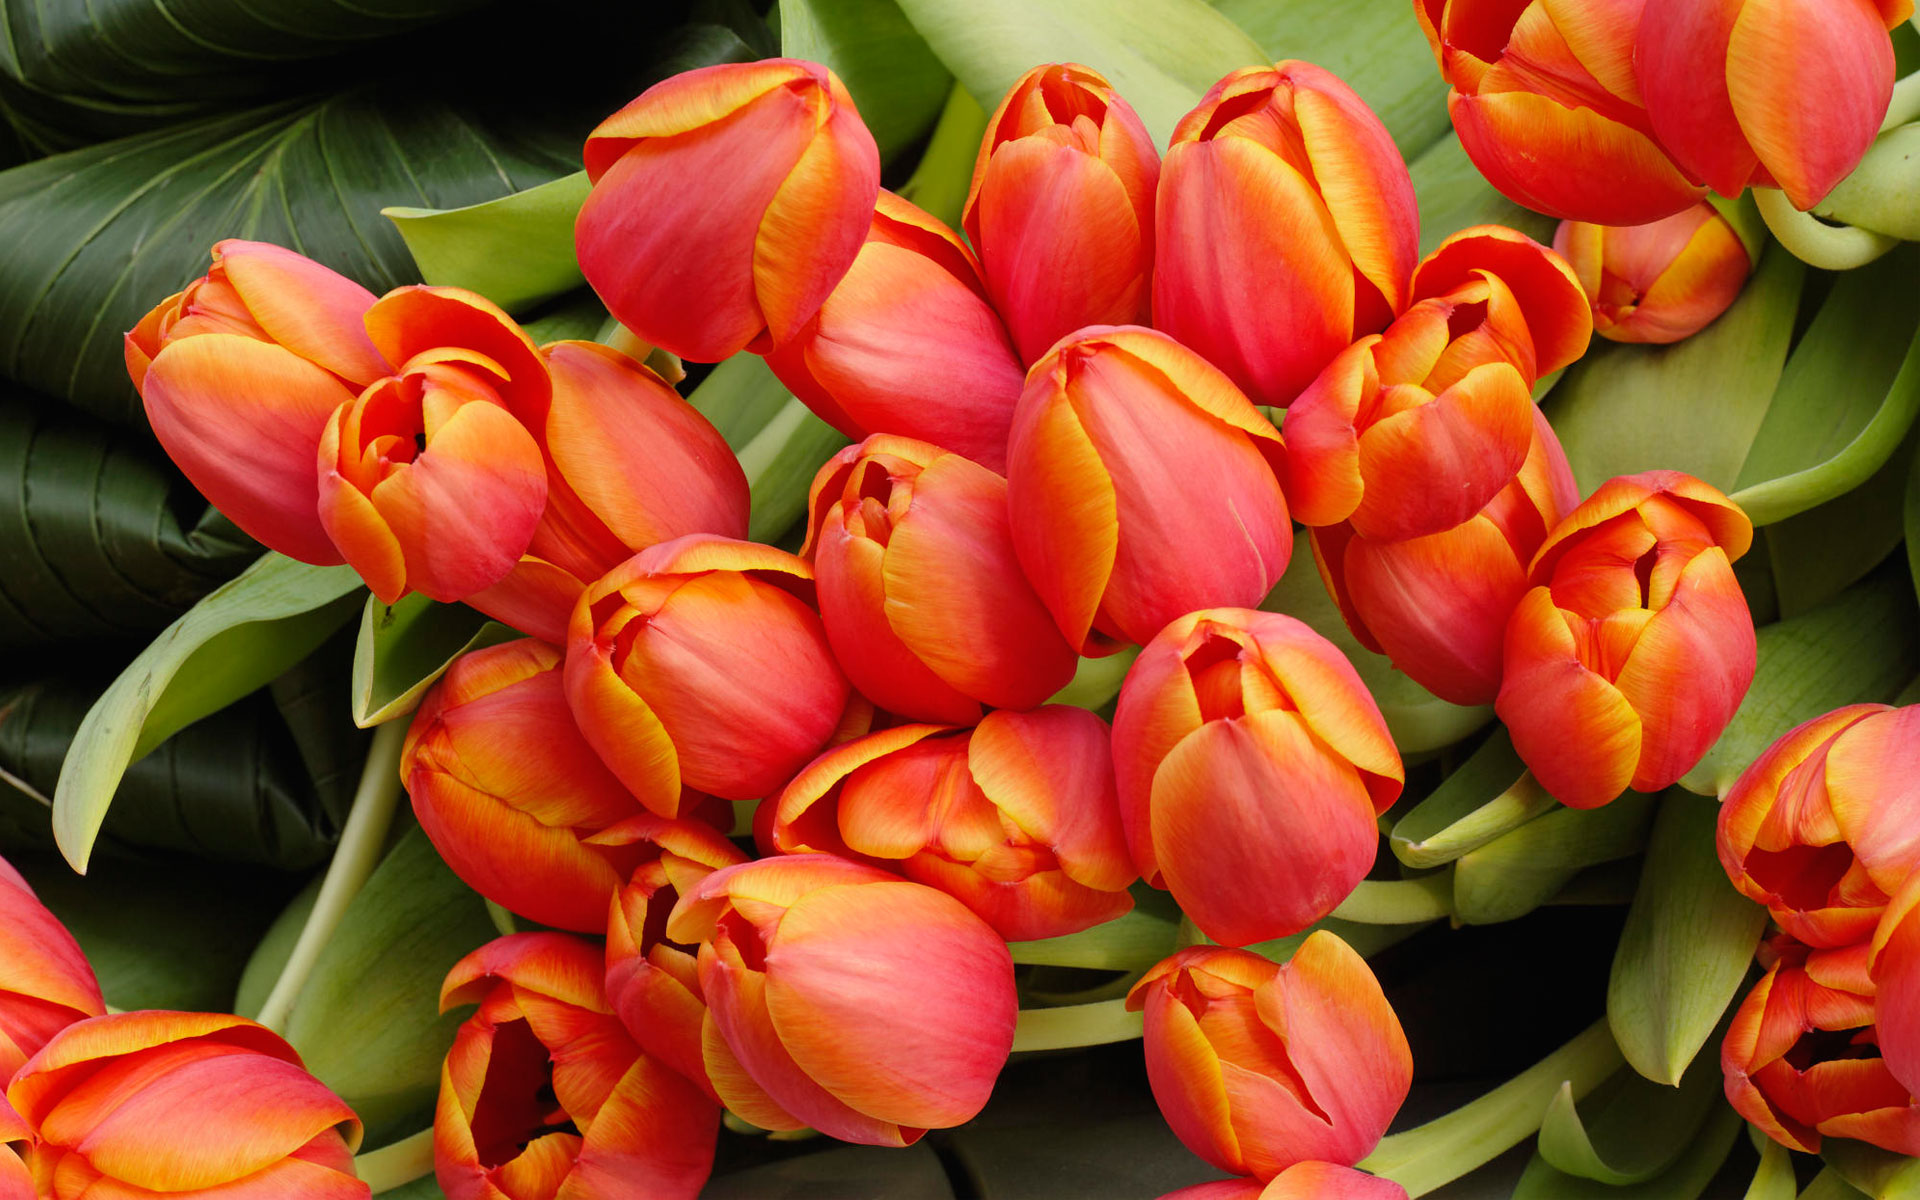 Tulip Flowers Arrangement wallpaper